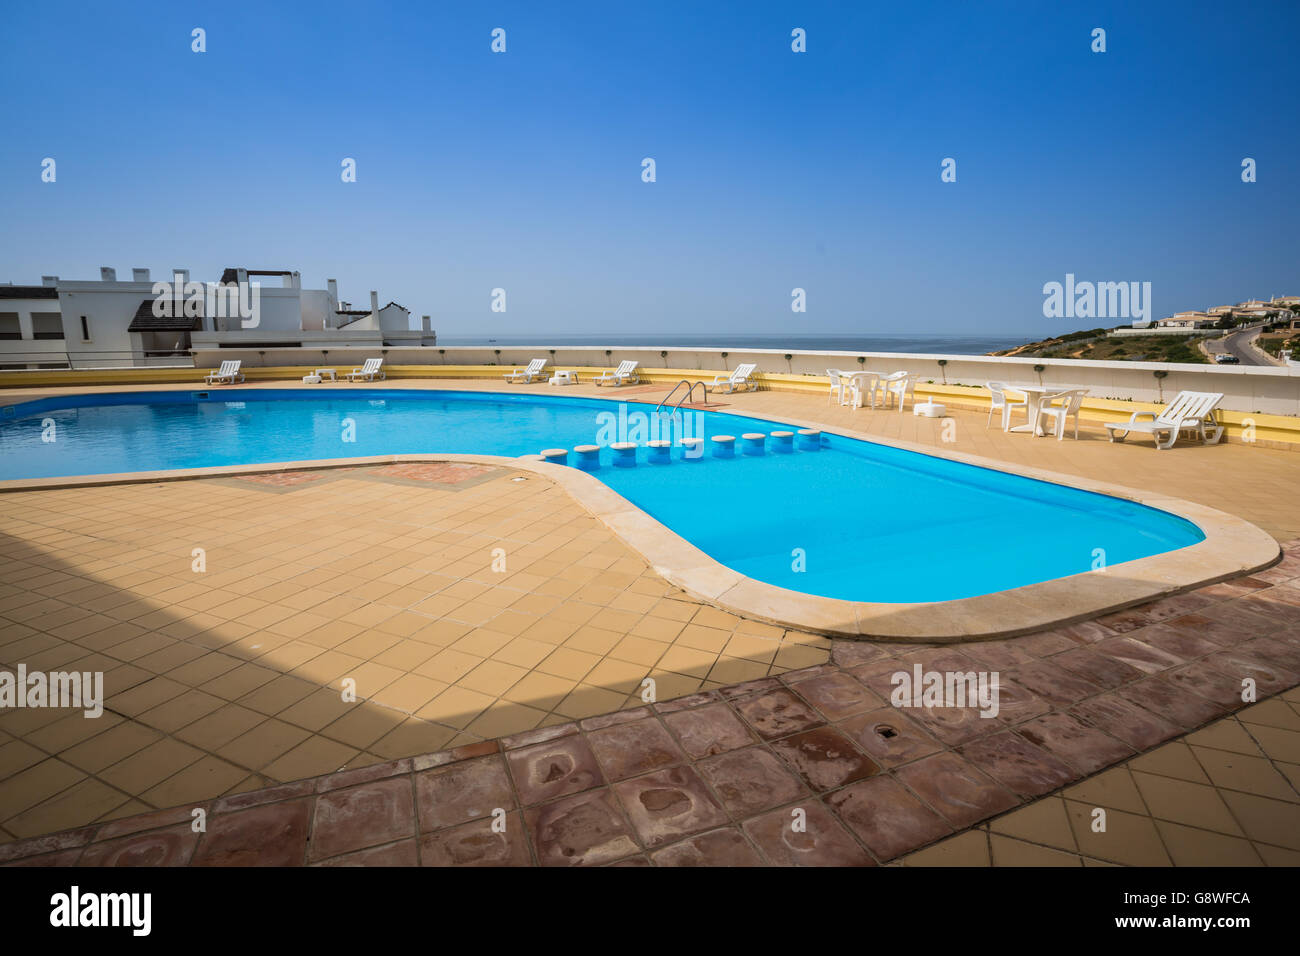 Swimming Pool On Top Of Roof Deck Building Stock Photo Royalty Free Image 108740362 Alamy